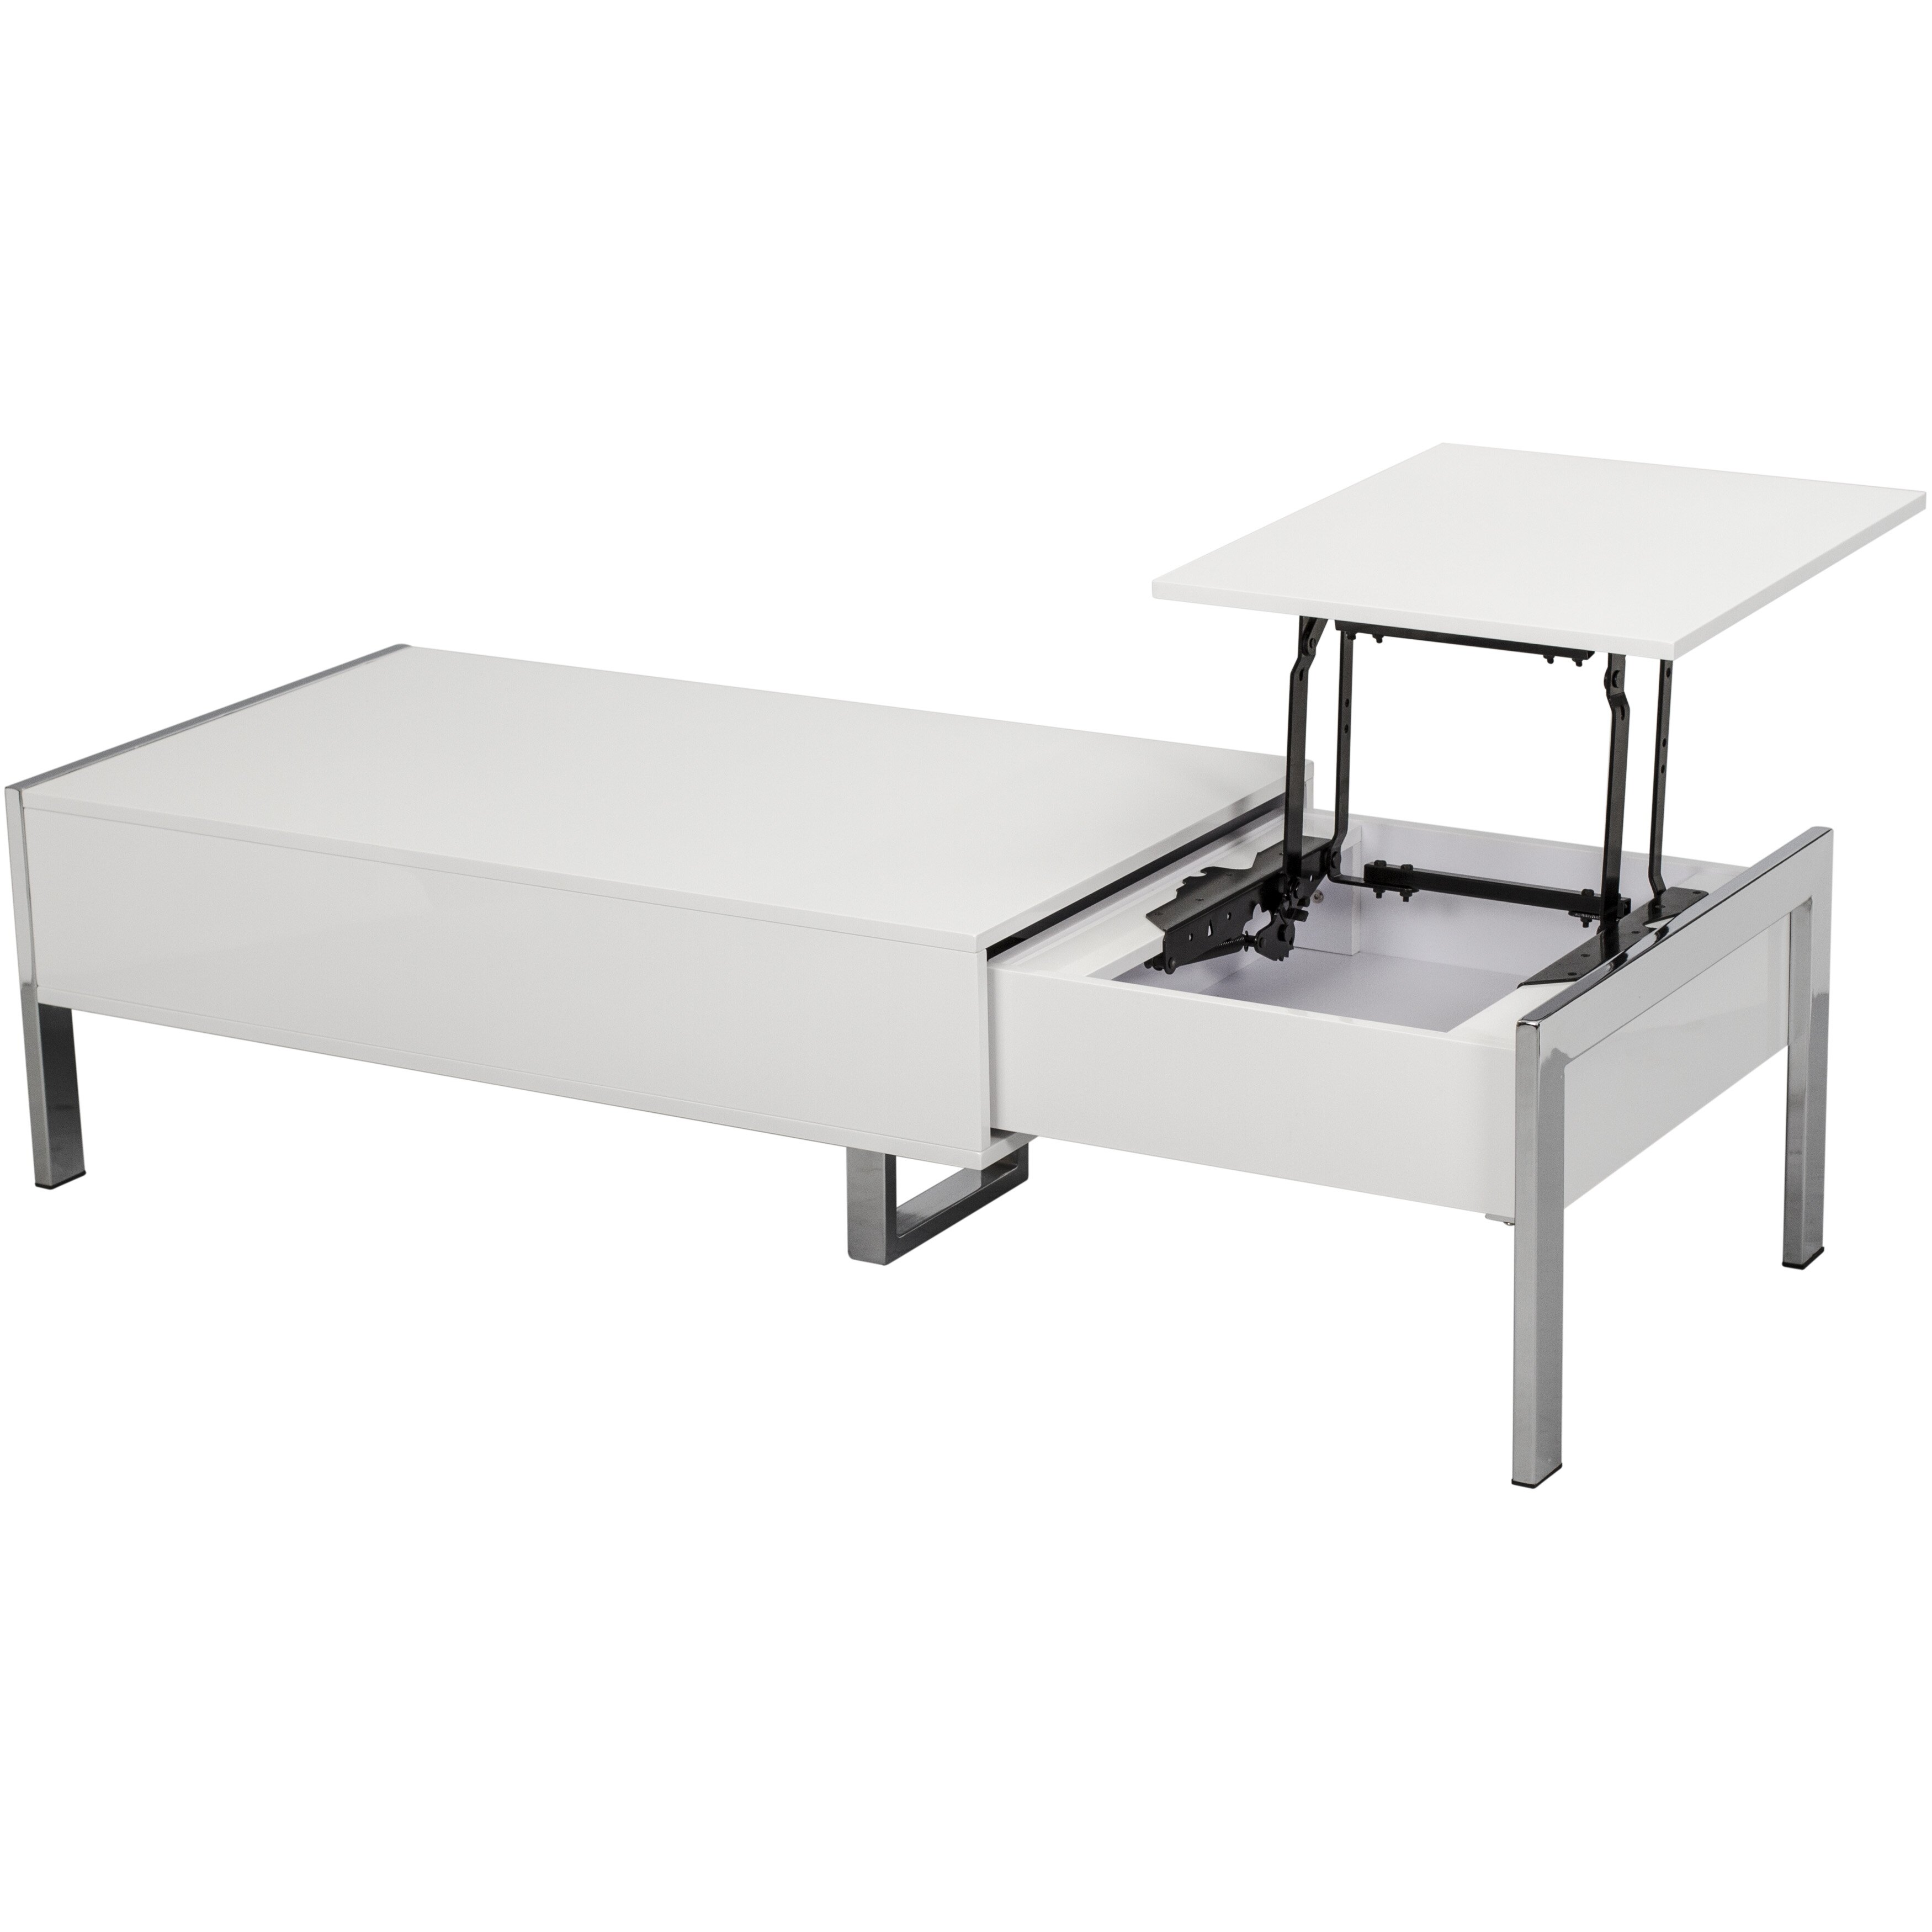 White Lift Top Coffee Tables: Matrix Selva White Coffee Table With Lift Top & Reviews